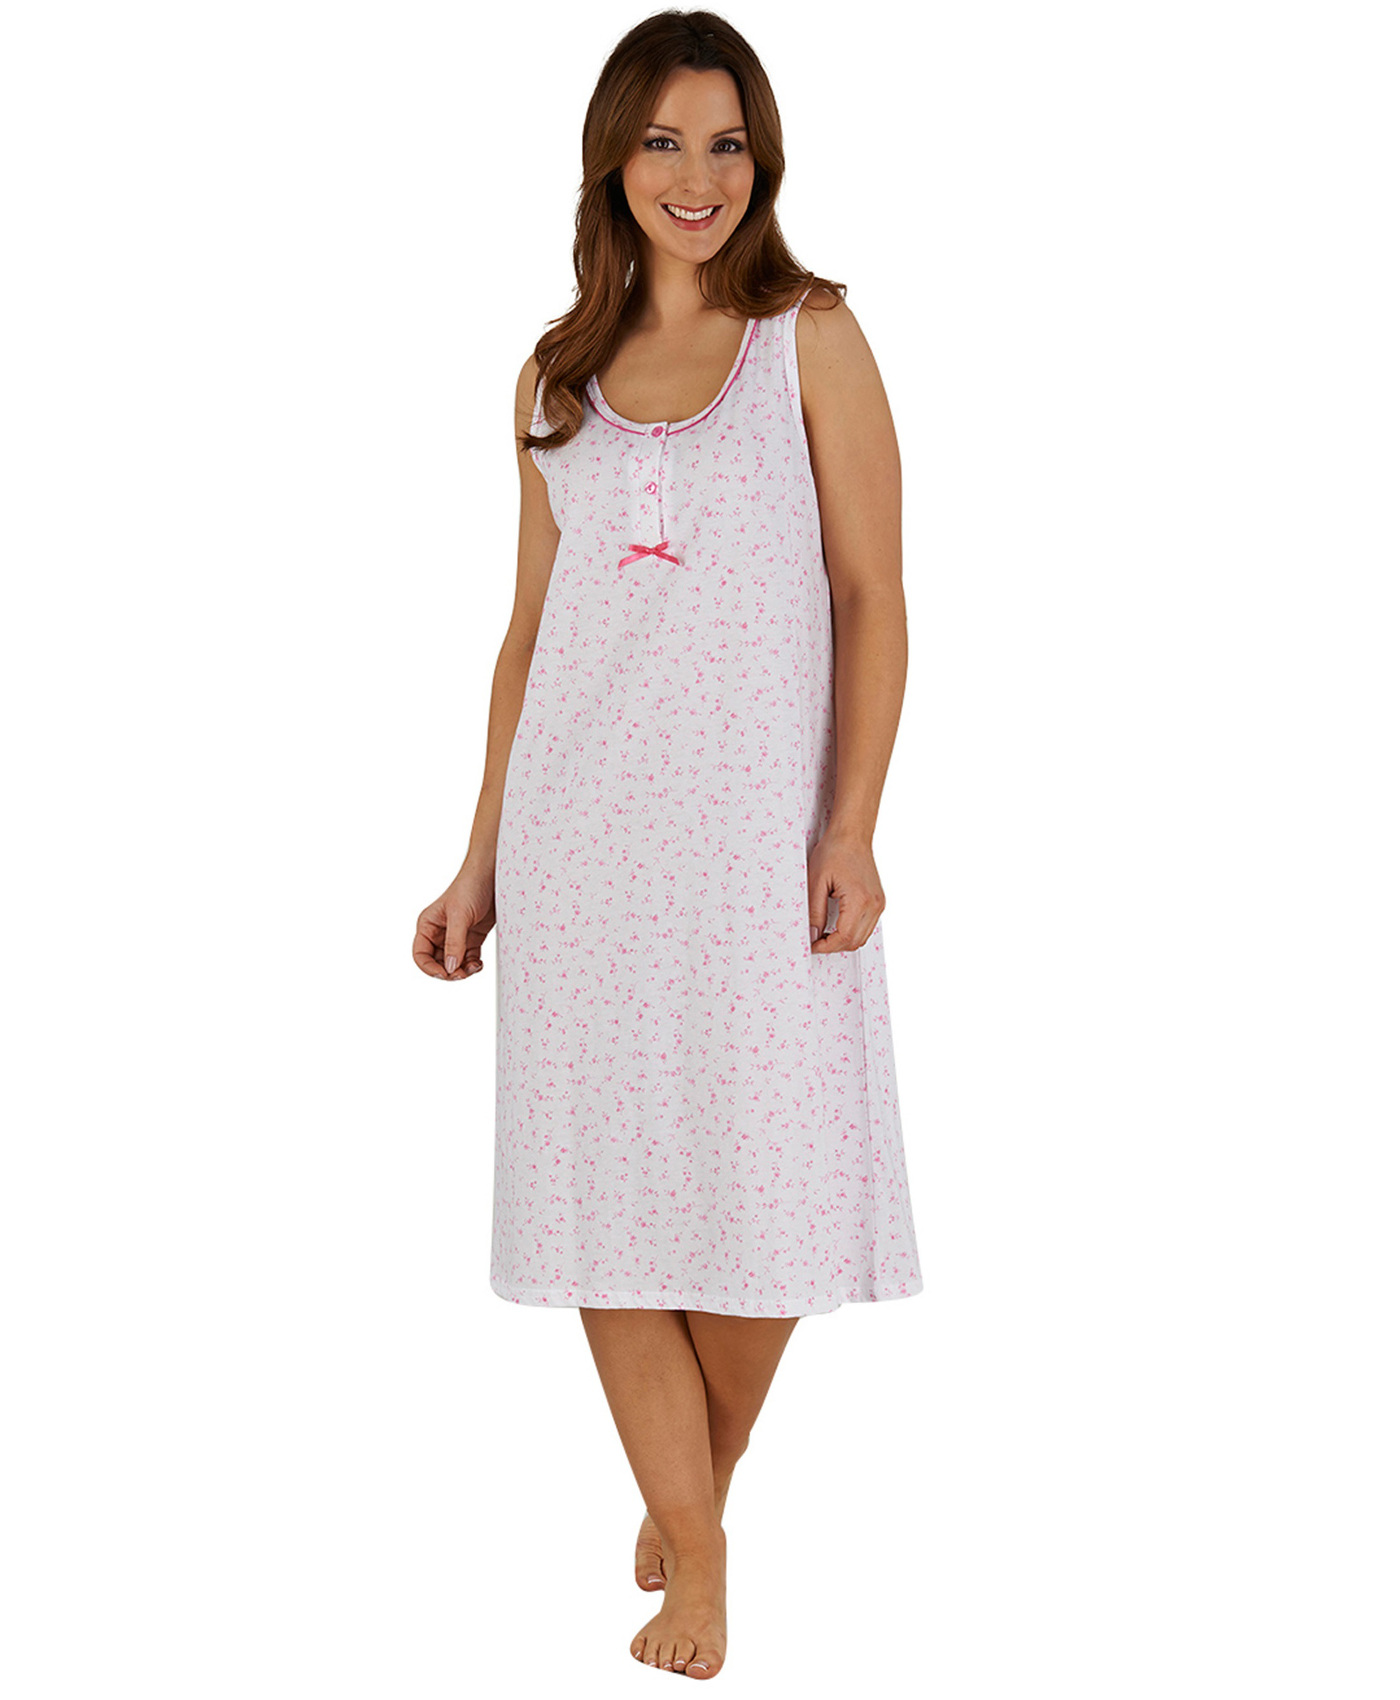 Shop our range of ladies nightdresses in a variety of colours and patterns. Find your next nightdress online and sleep in comfort. Shop online at Bonmarché.